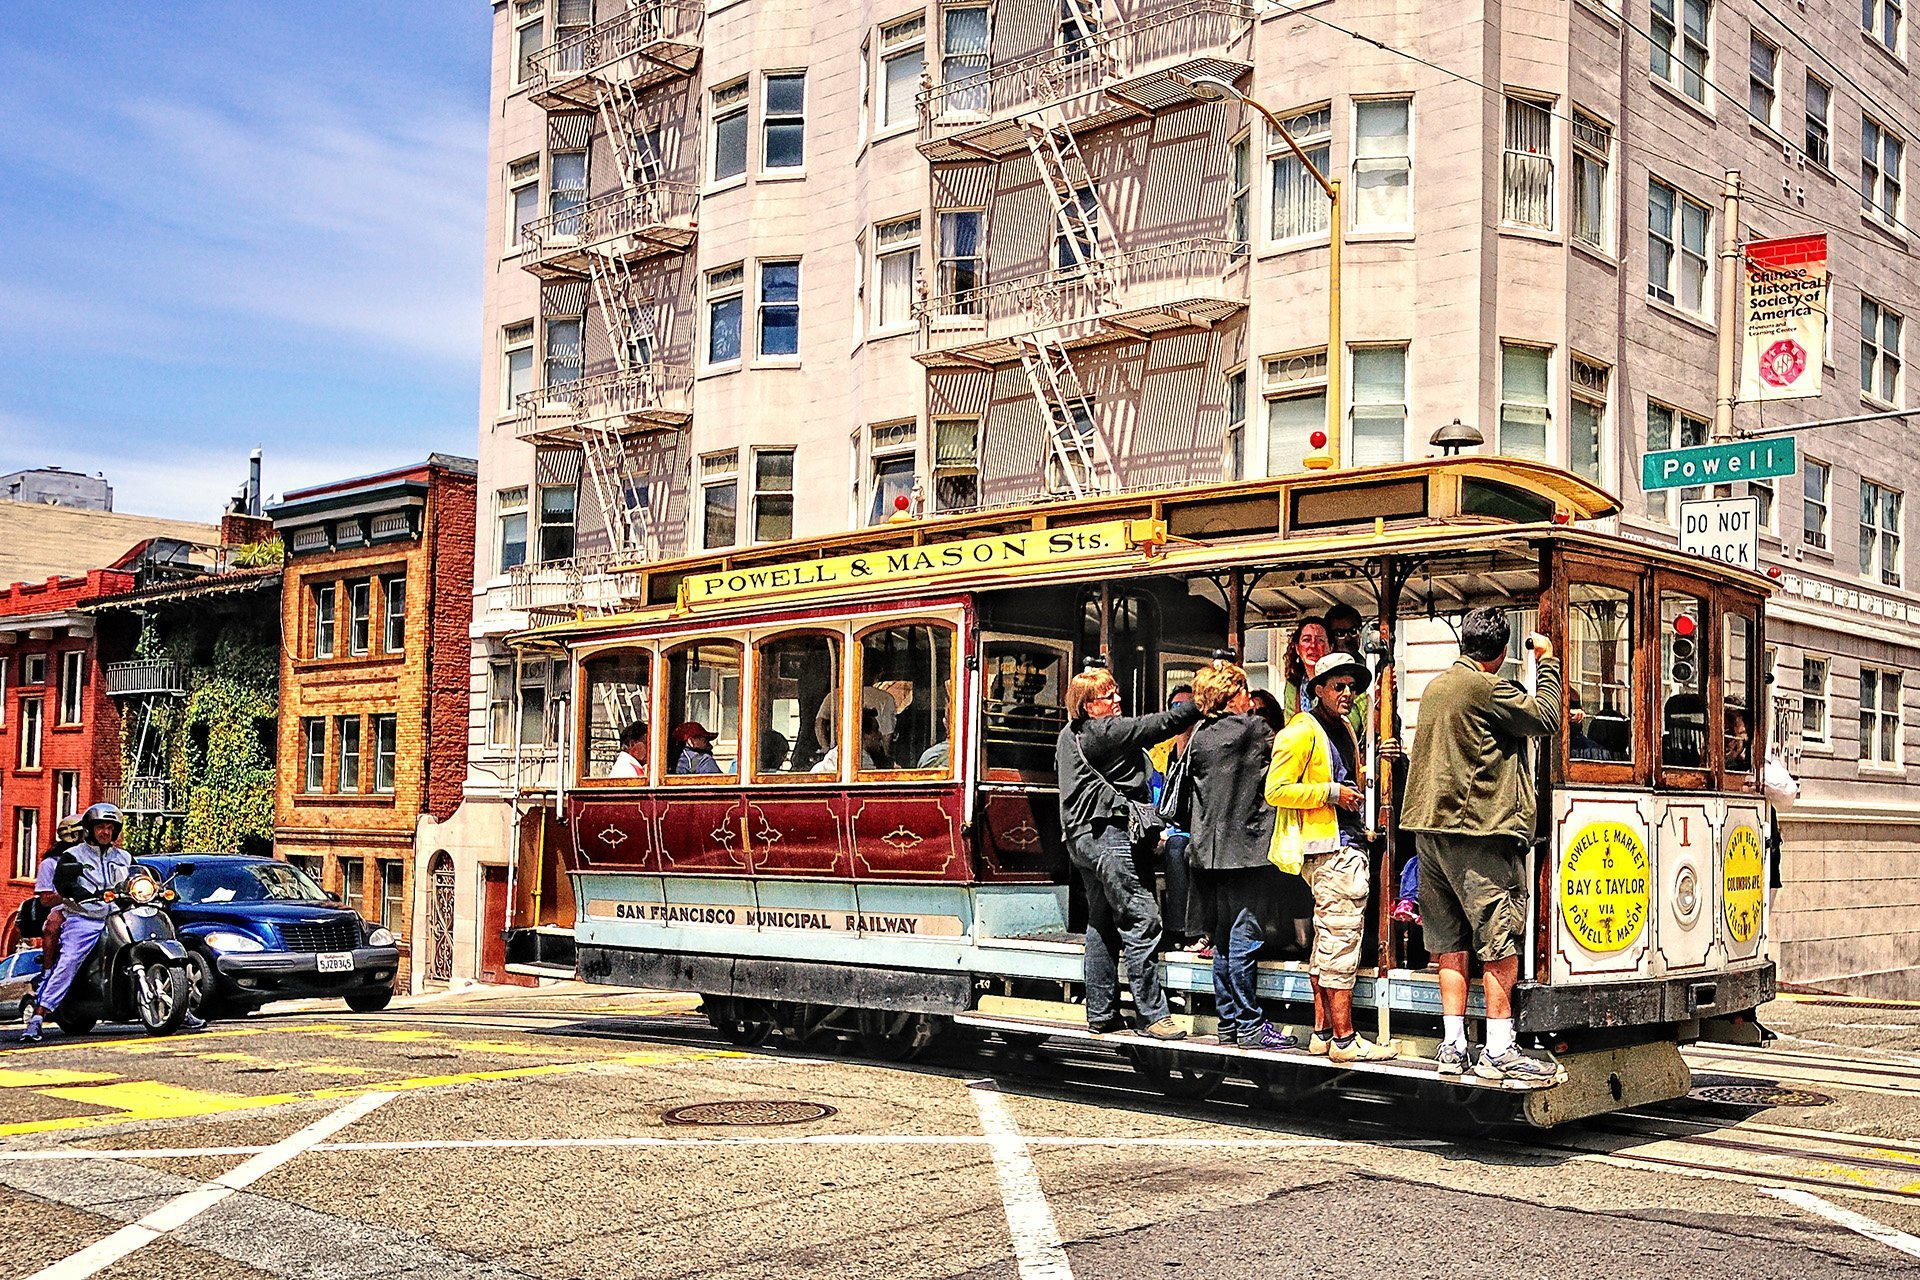 san francisco tramvay